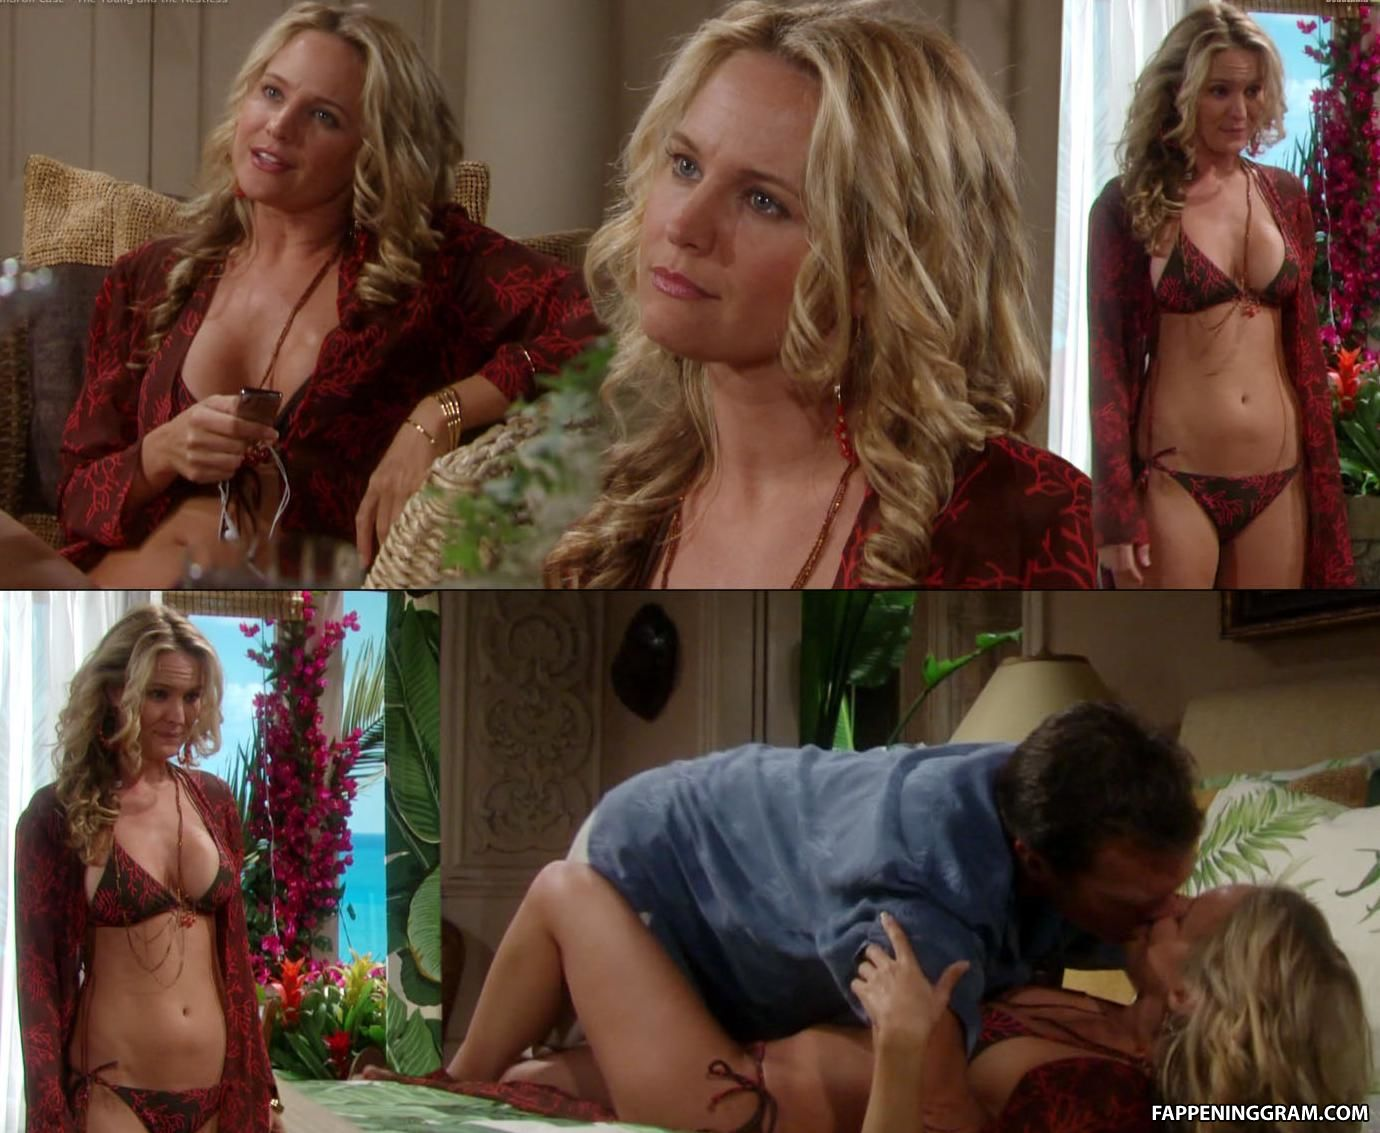 Sharon Case Nude In The Young And The Restless